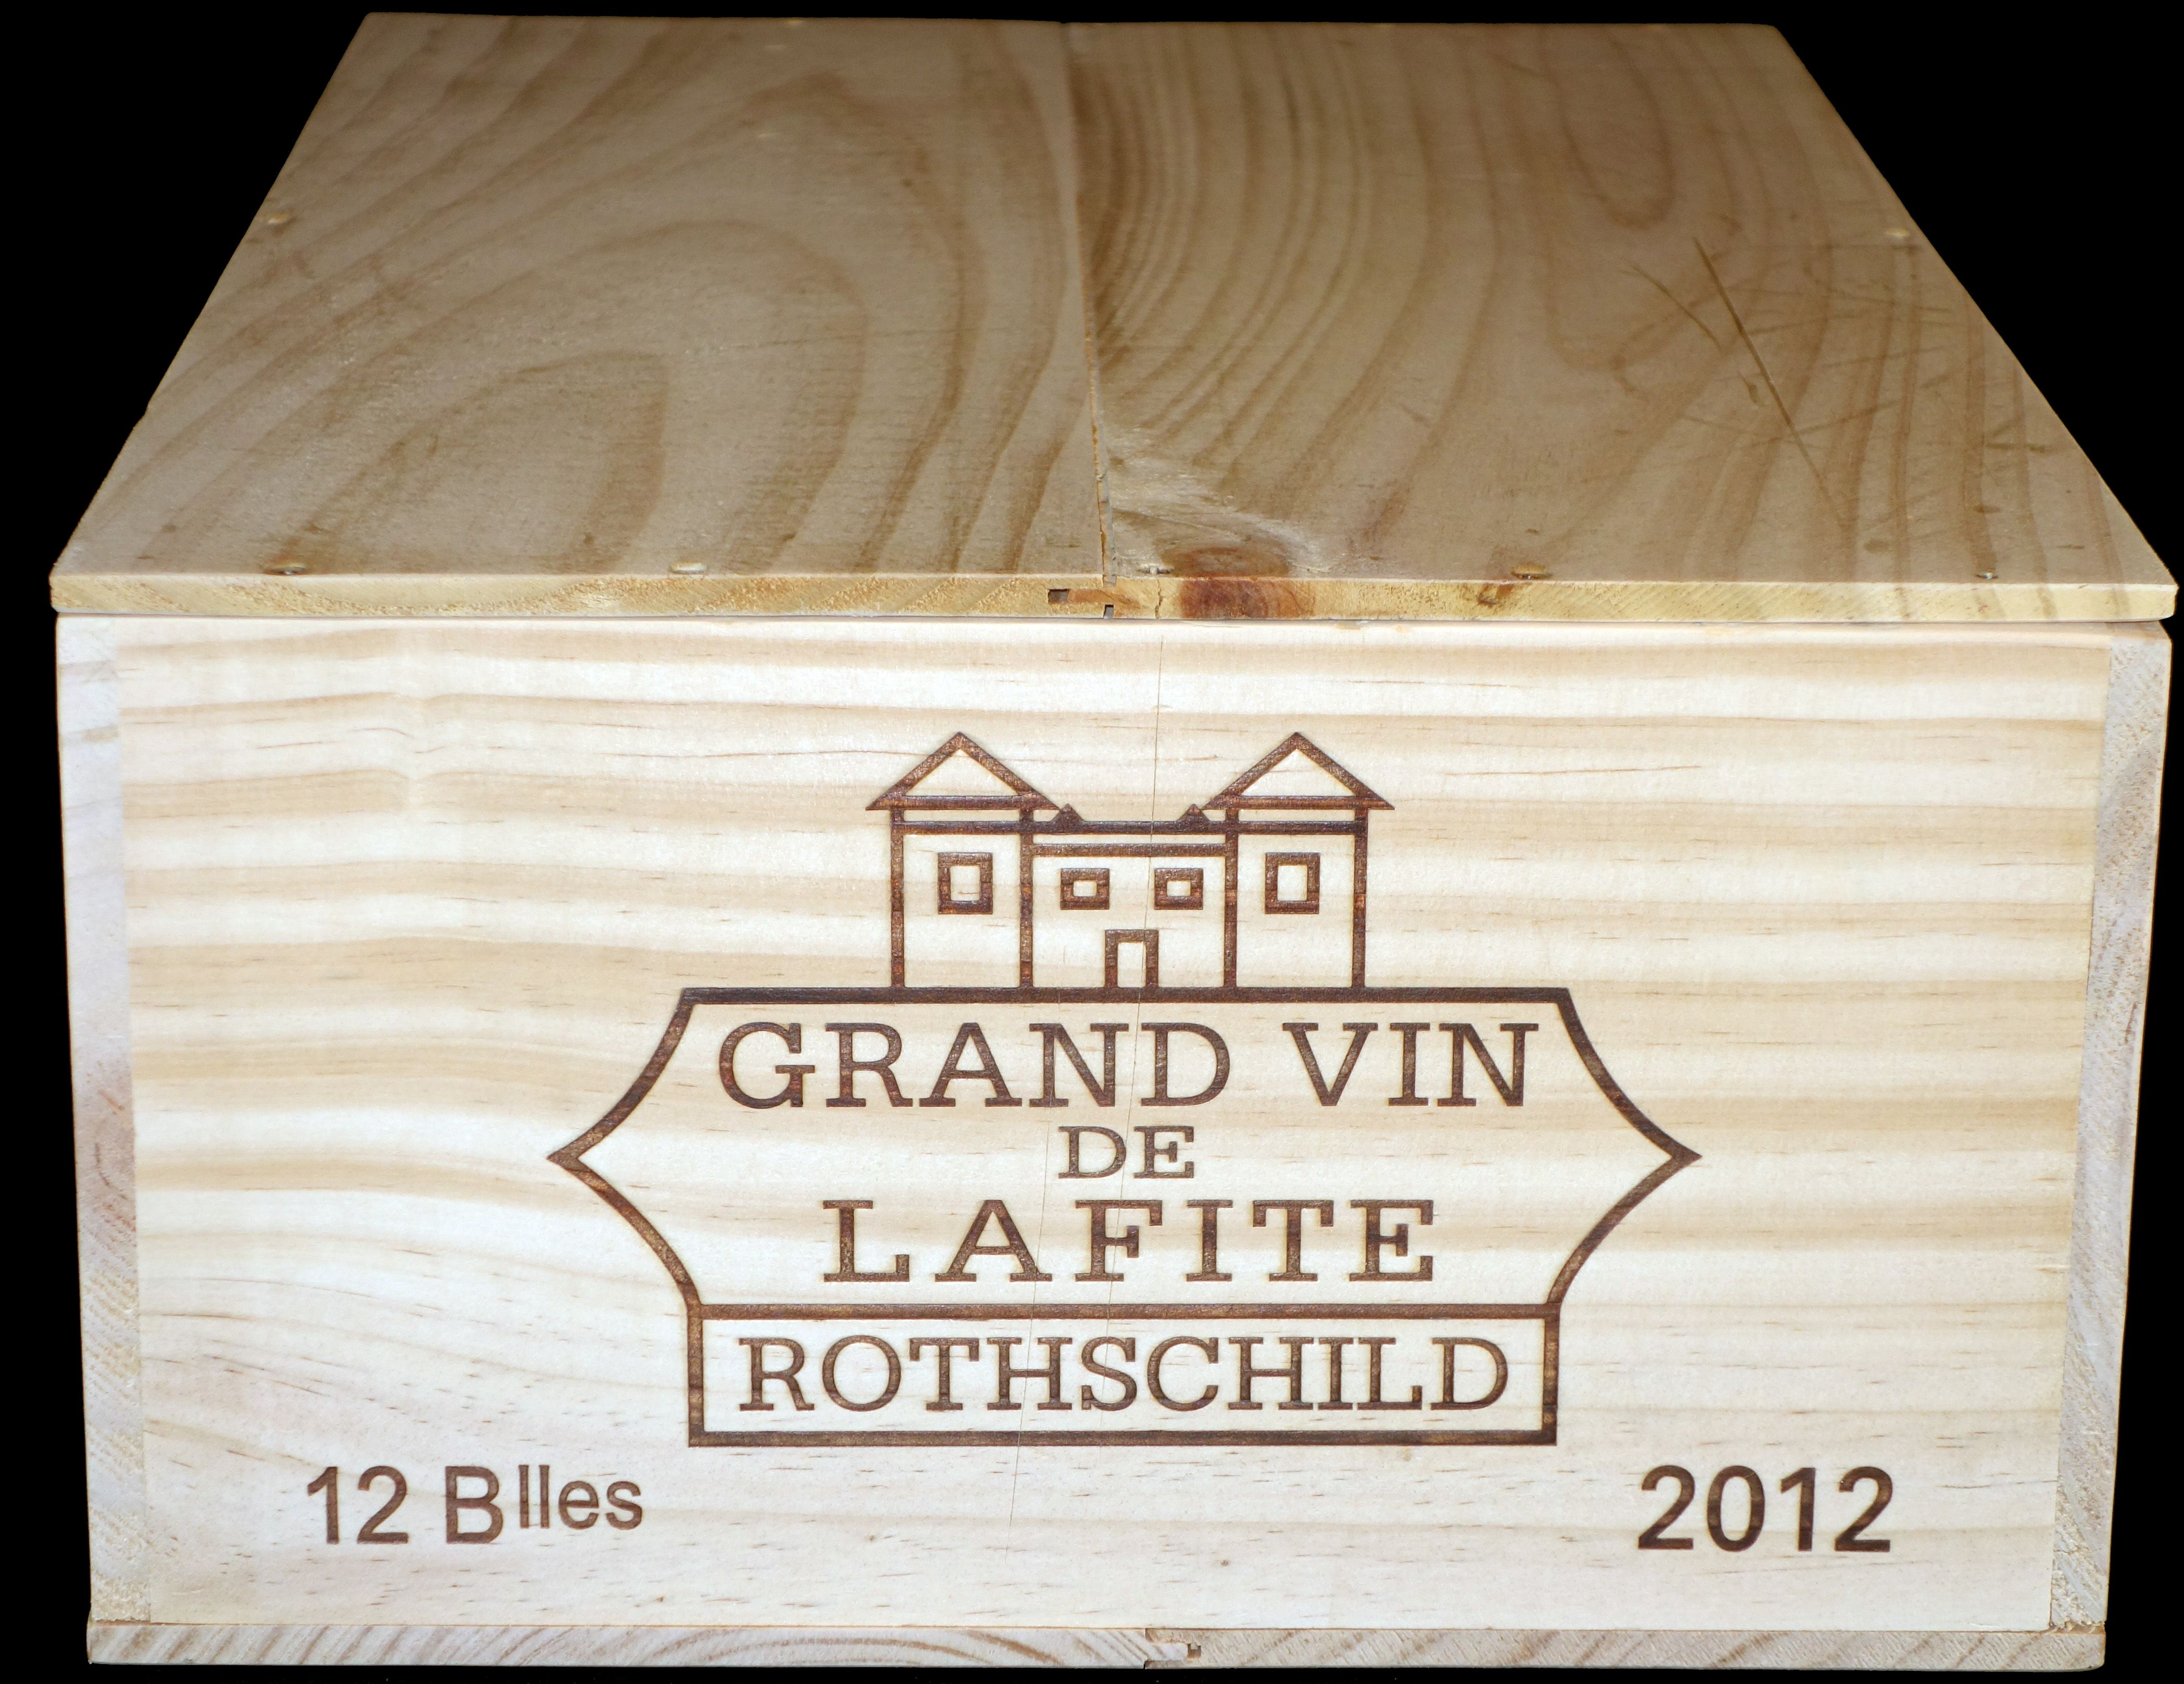 Vintage Wooden Red Bordeaux Wine Box Crate Kitchen, Dining & Bar Home & Garden